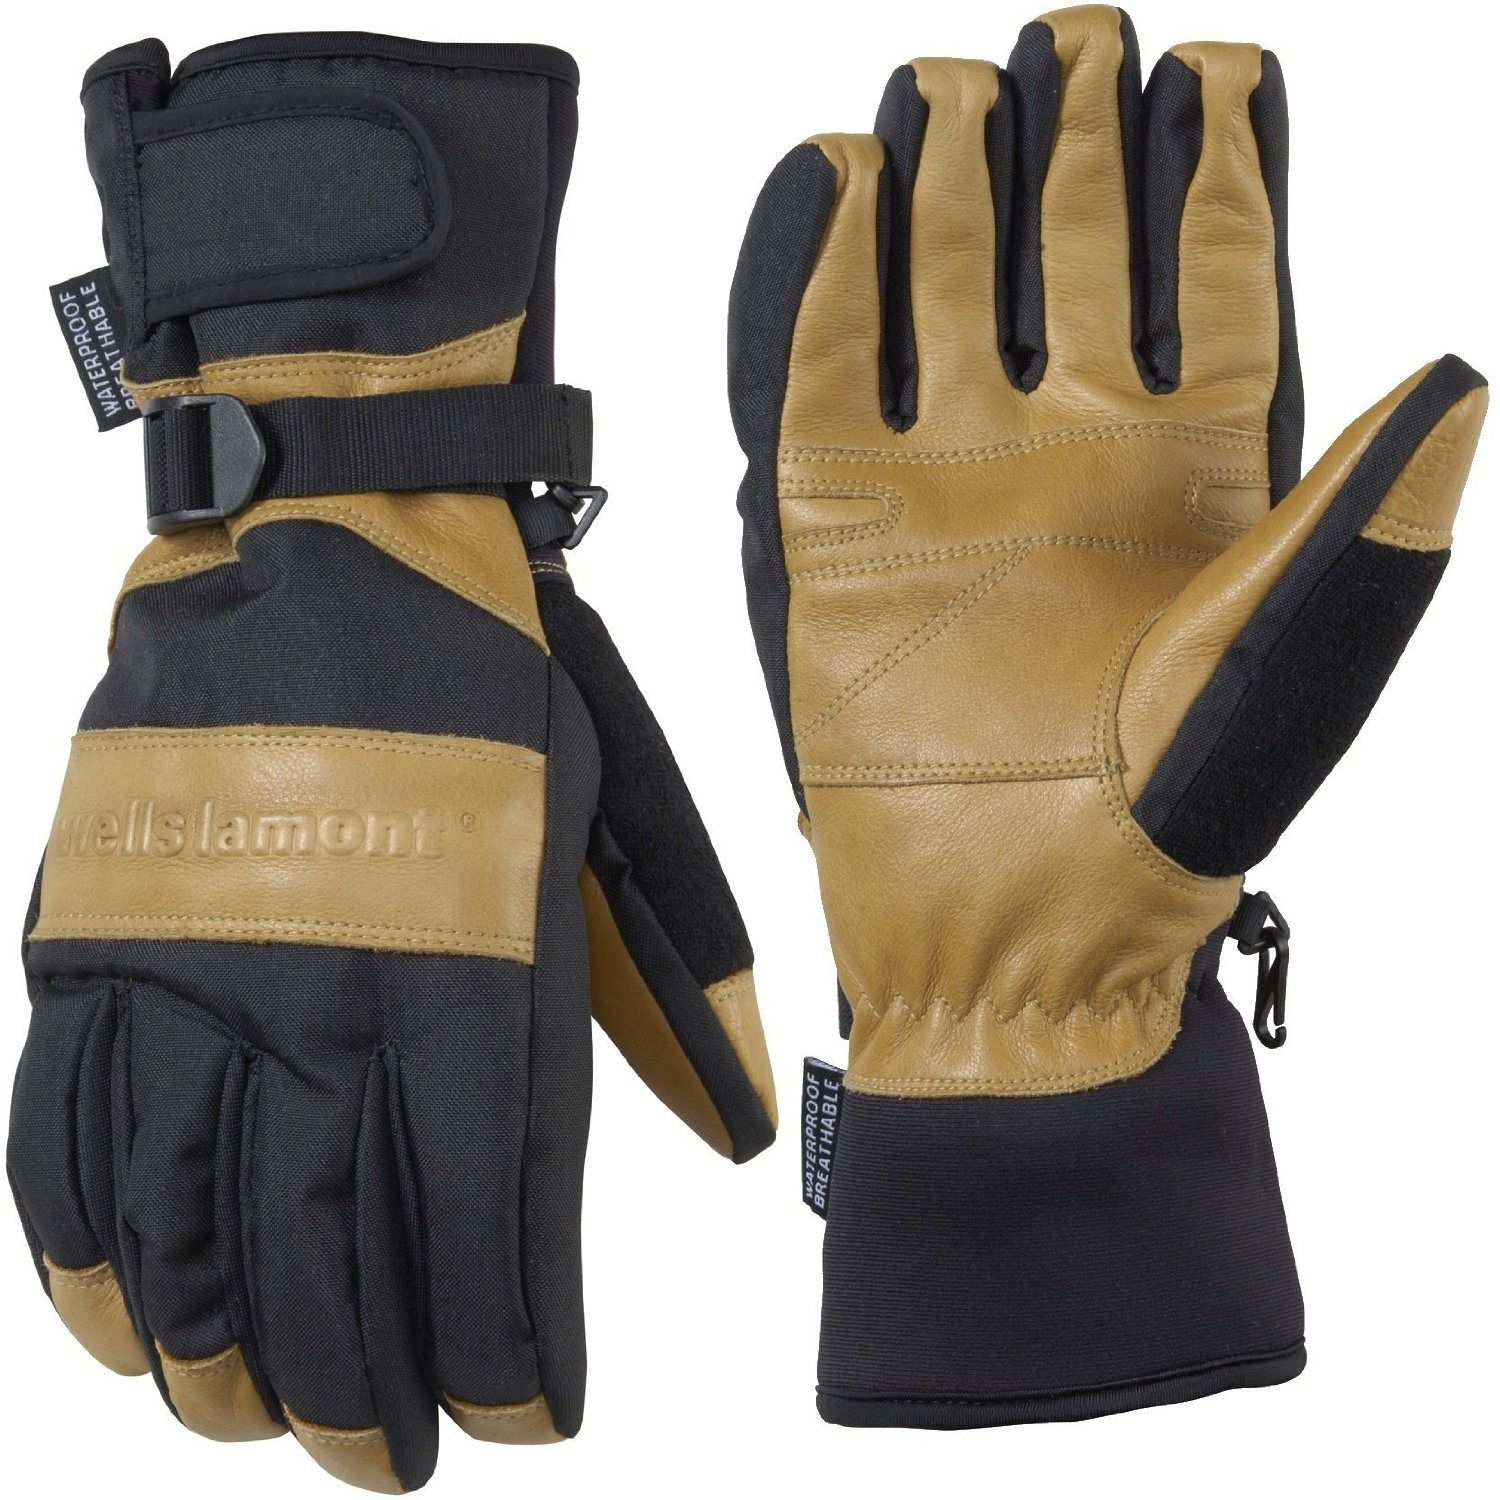 Wells Lamont Grips Gold Insulated Waterproof Gloves Men L by Wells Lamont